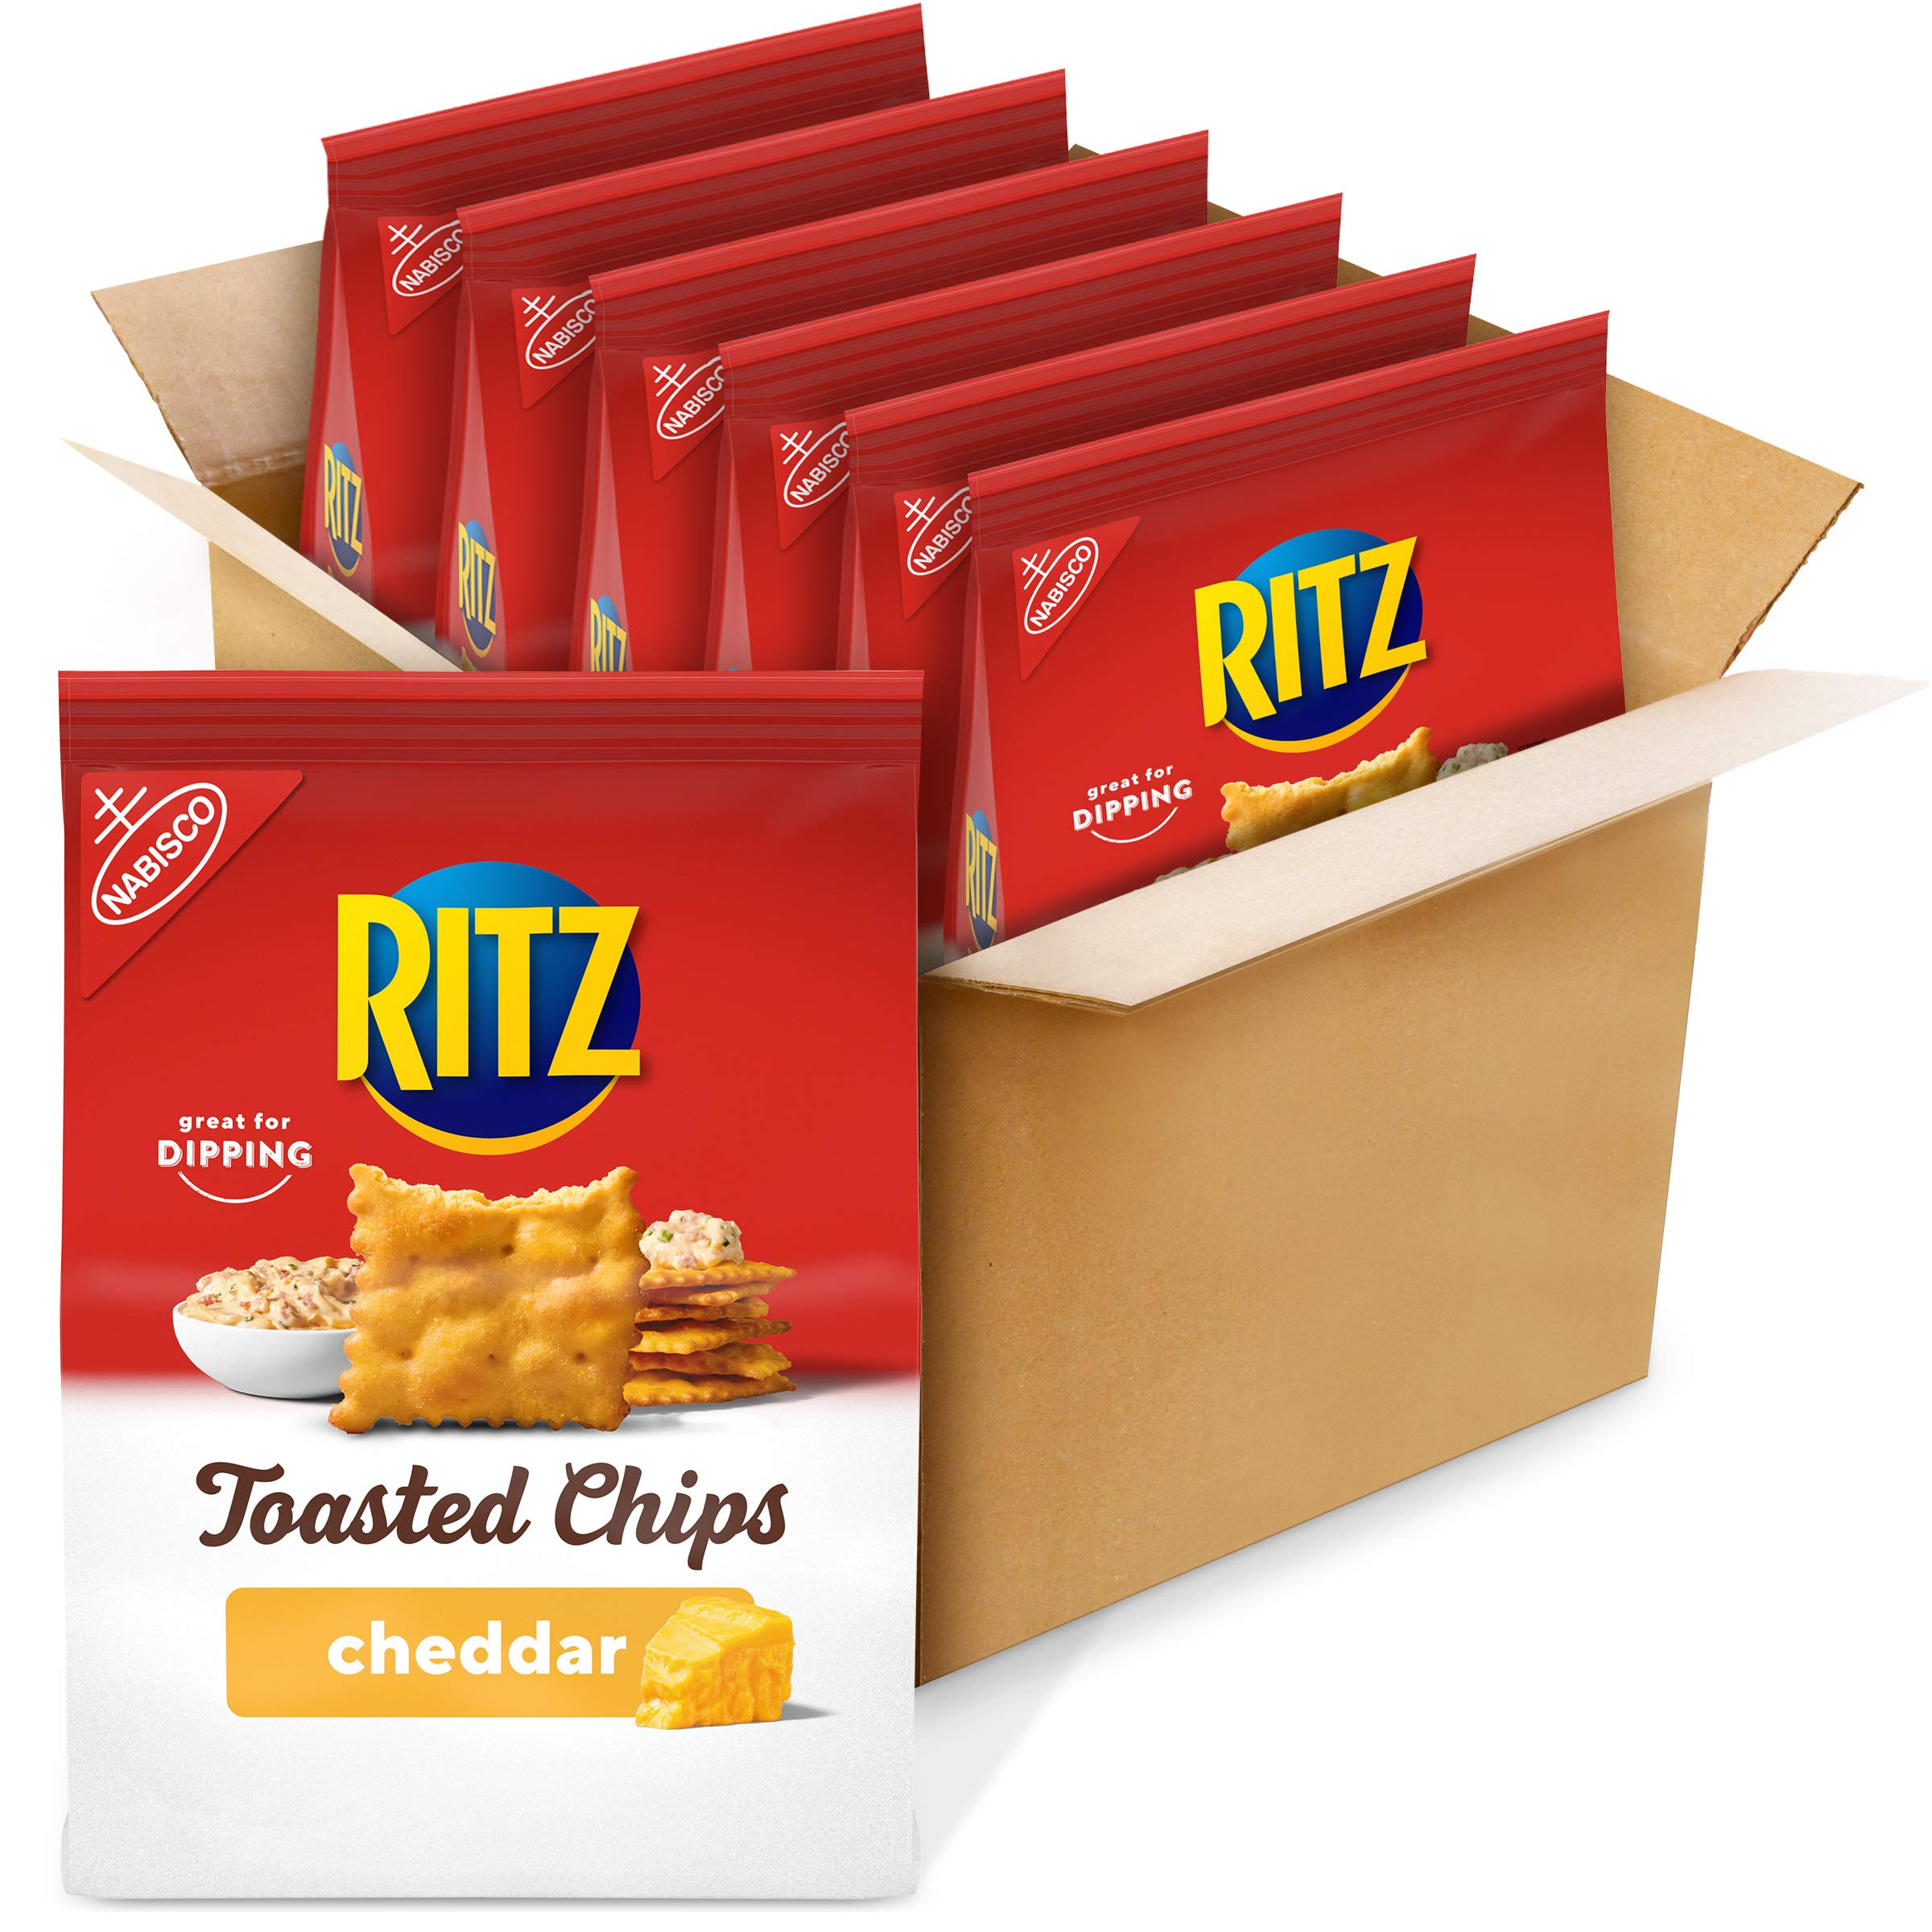 Ritz Toasted Chips, Cheddar, 8.1 Oz (Pack of 6)